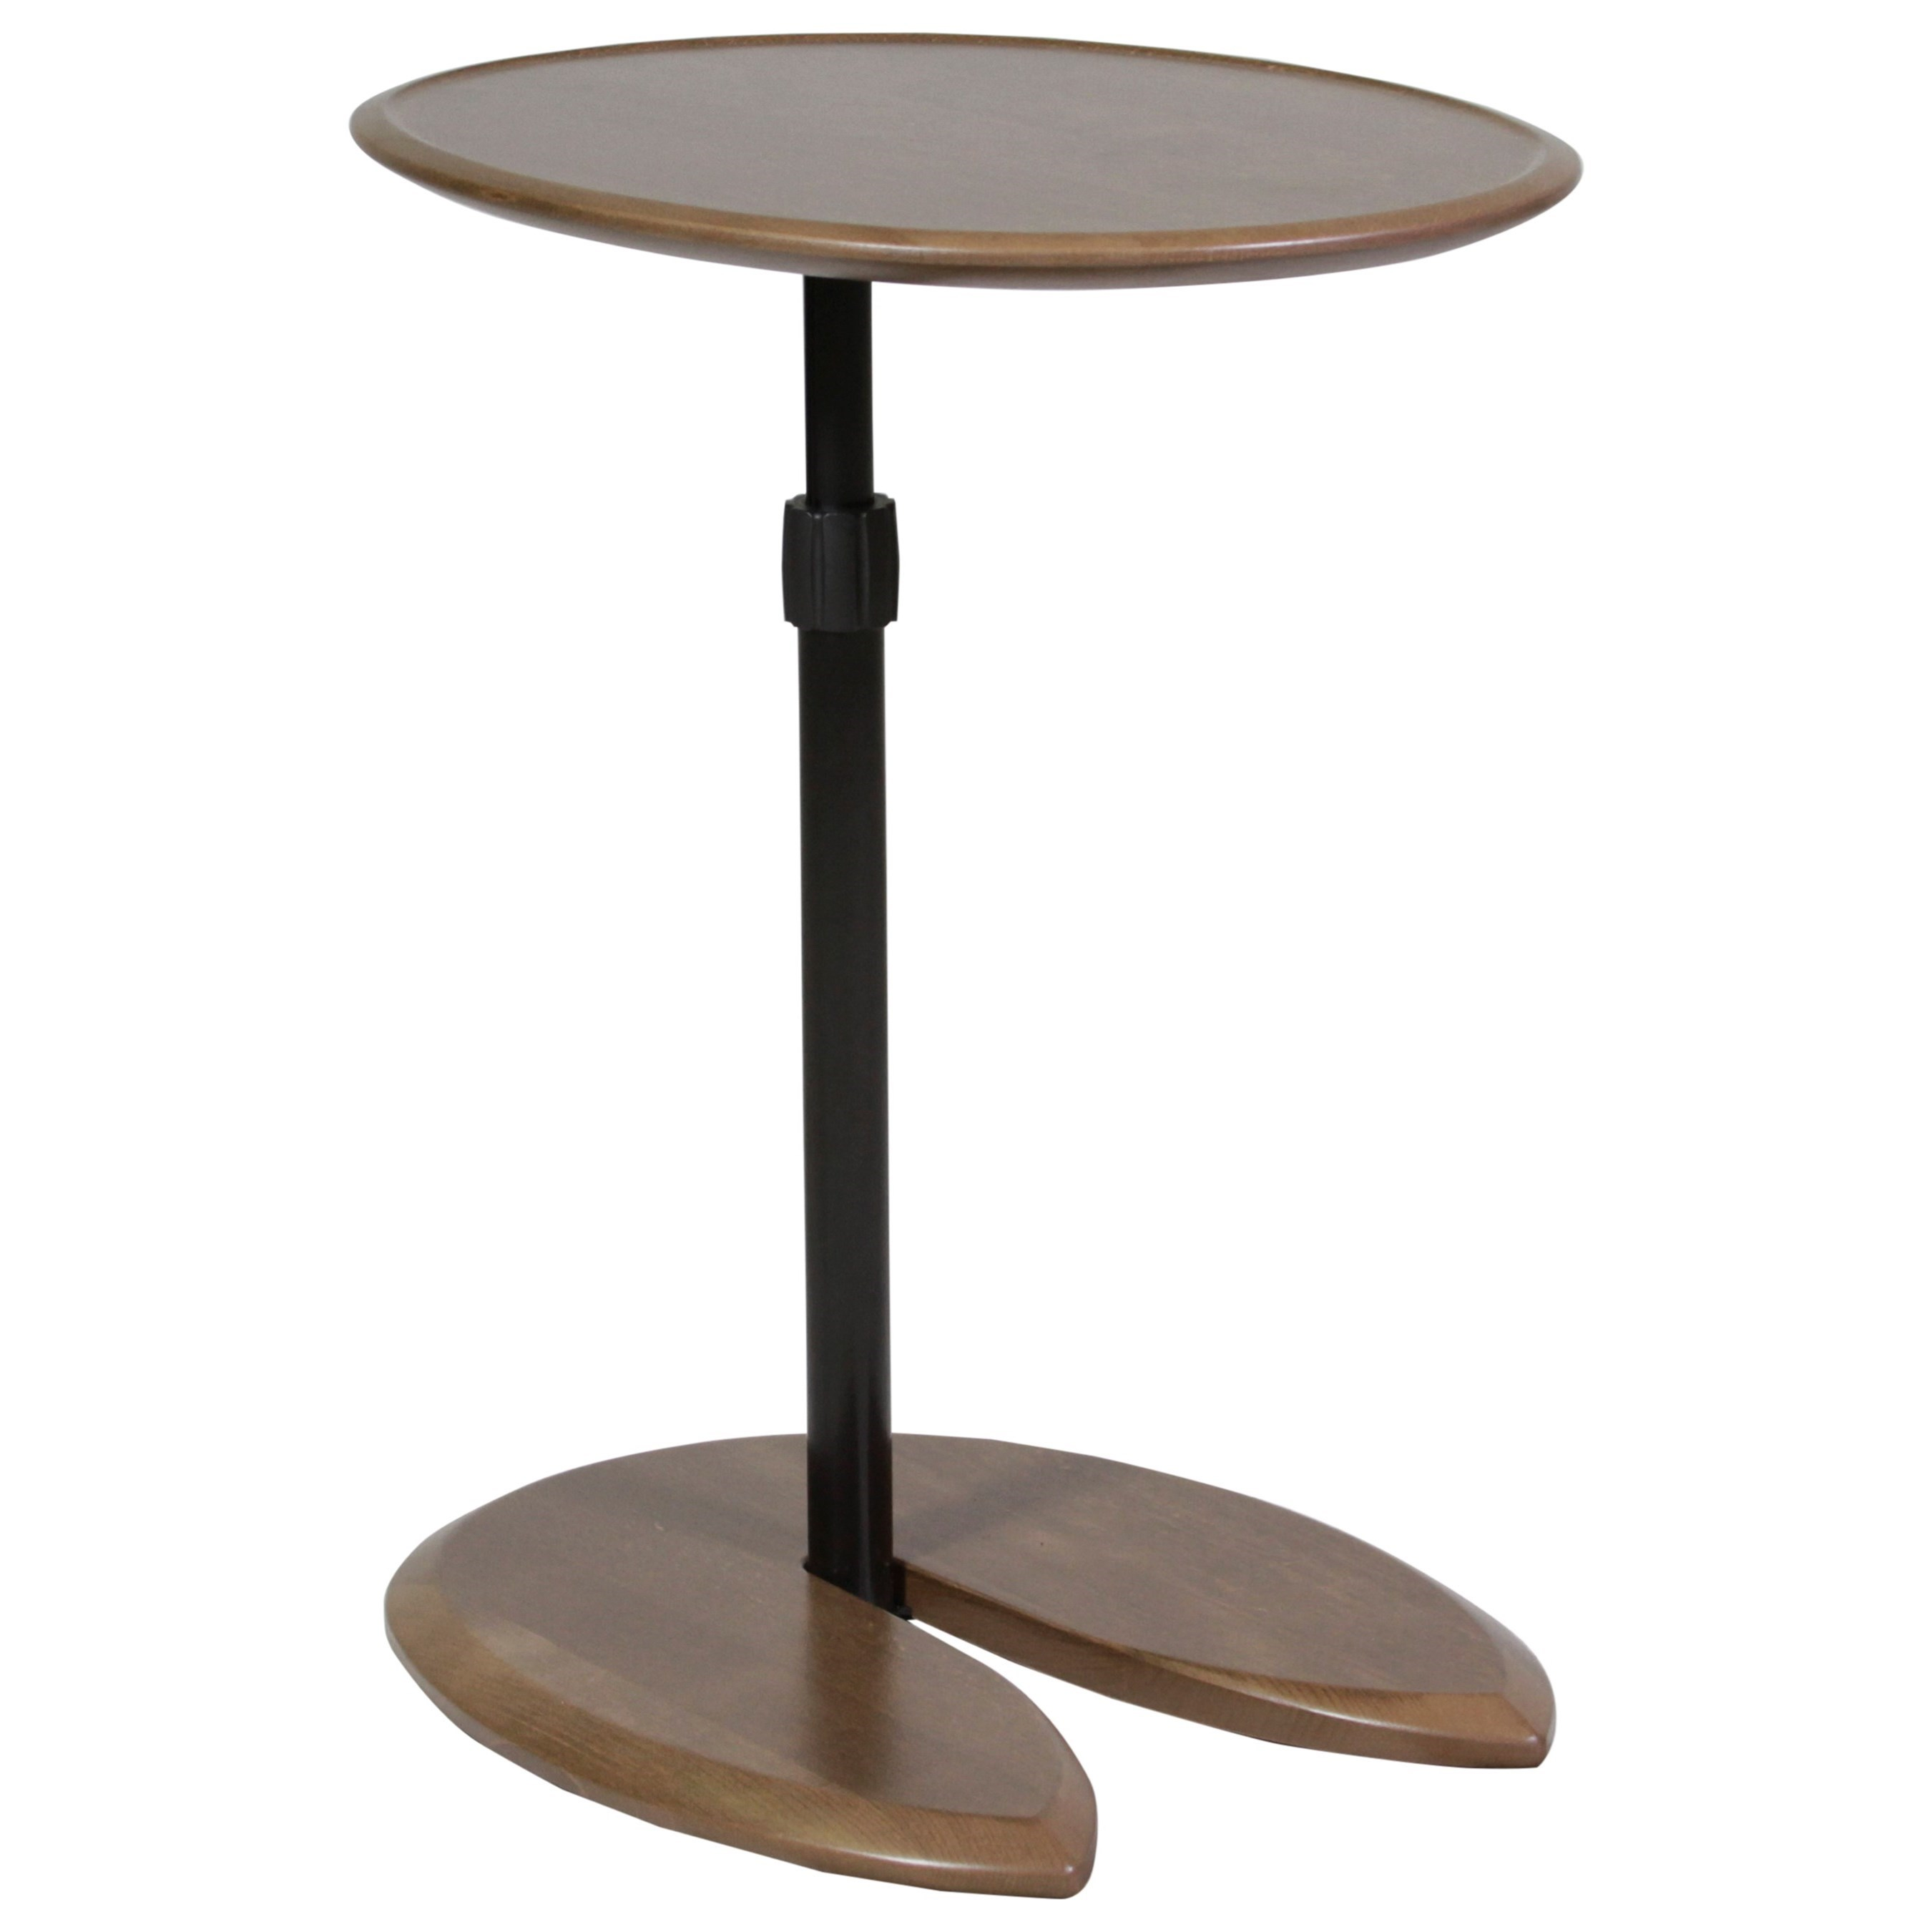 Tables Ellipse Table by Stressless at Novello Home Furnishings